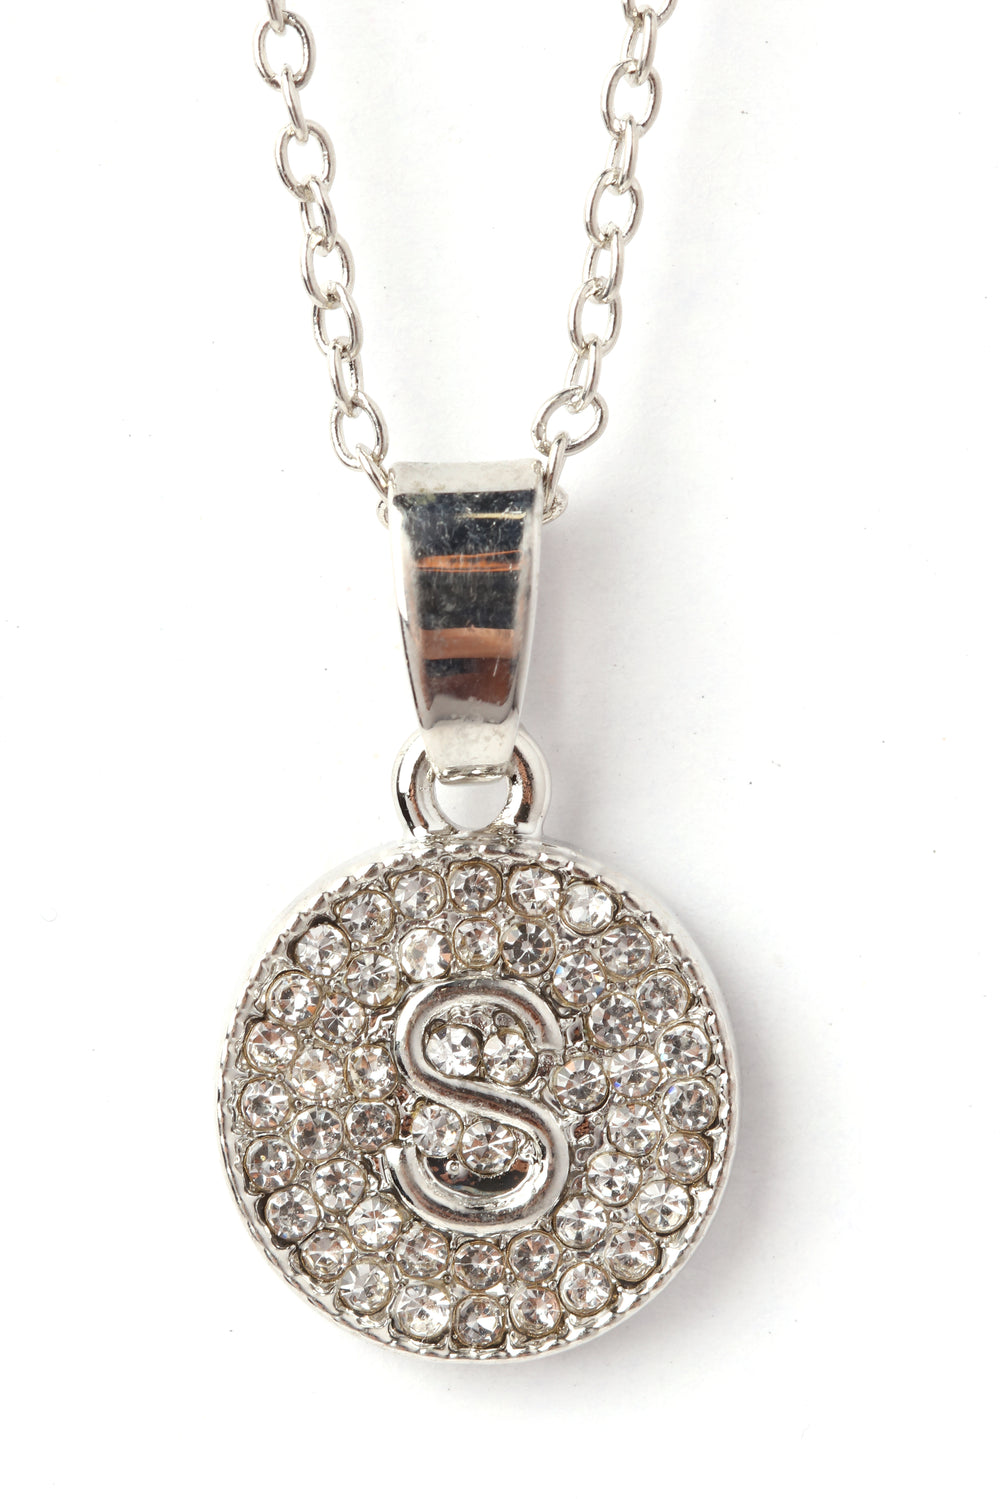 Chic And Unique 'S' Necklace - Silver